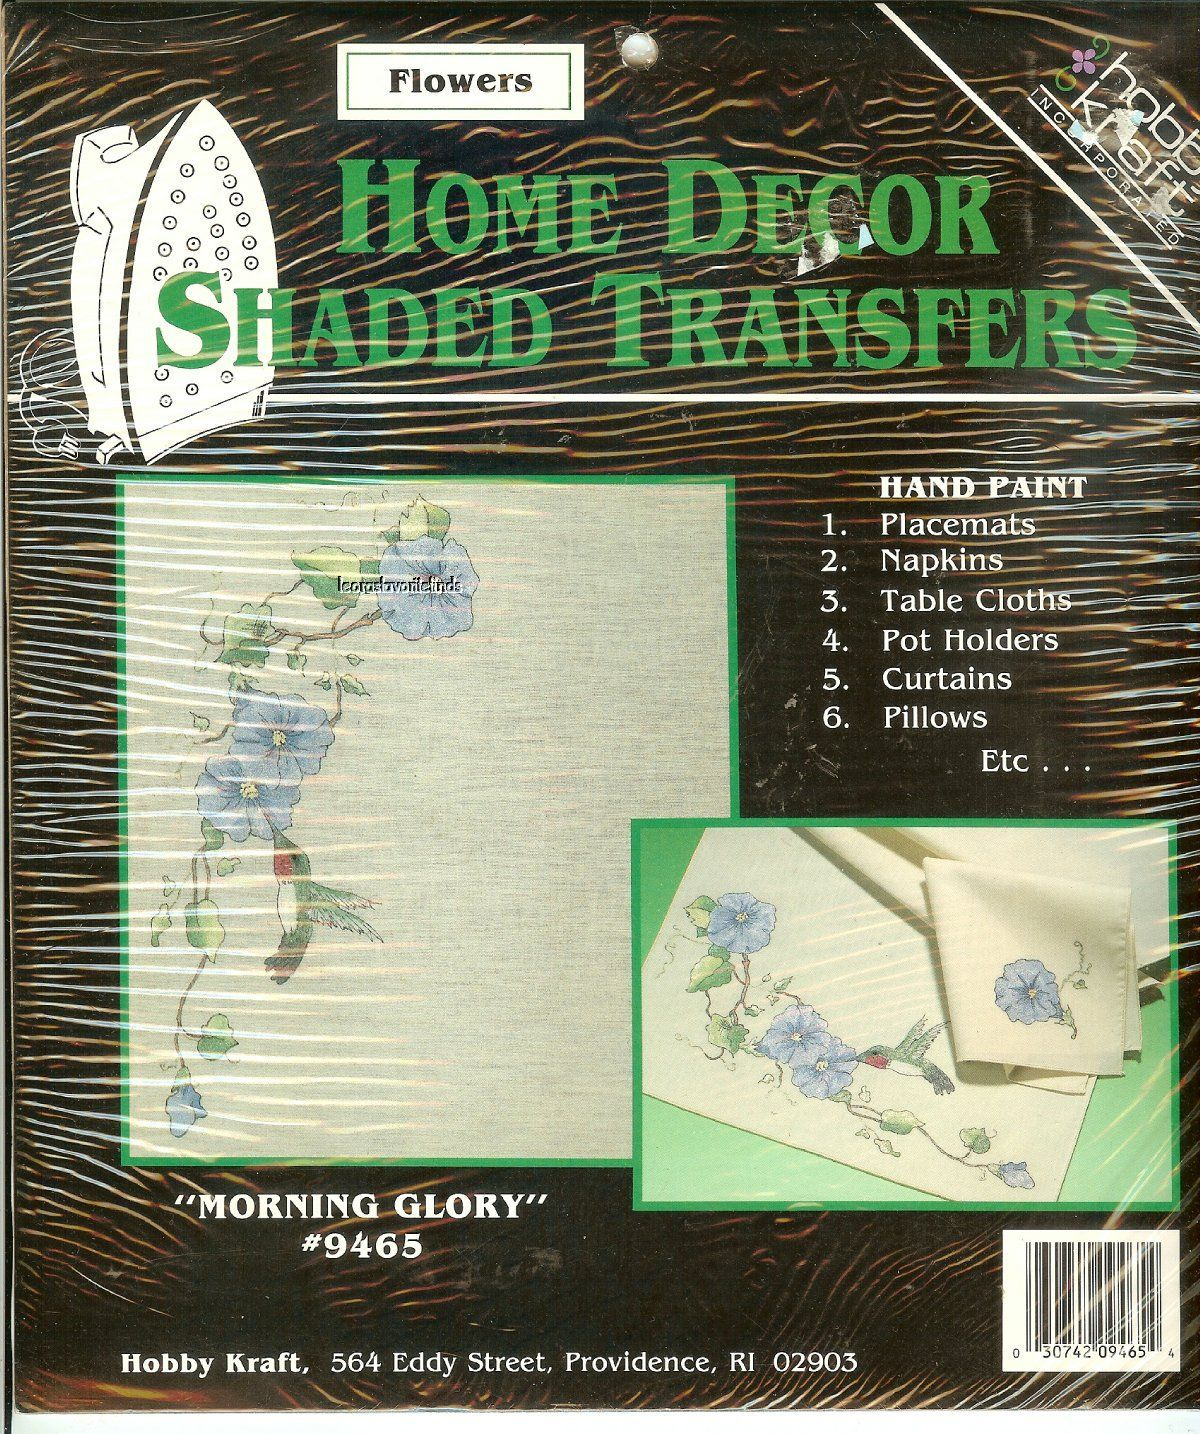 Details About Morning Glory Home Decor Shaded Transfers Floral Hobby Kraft Kit 9465 New